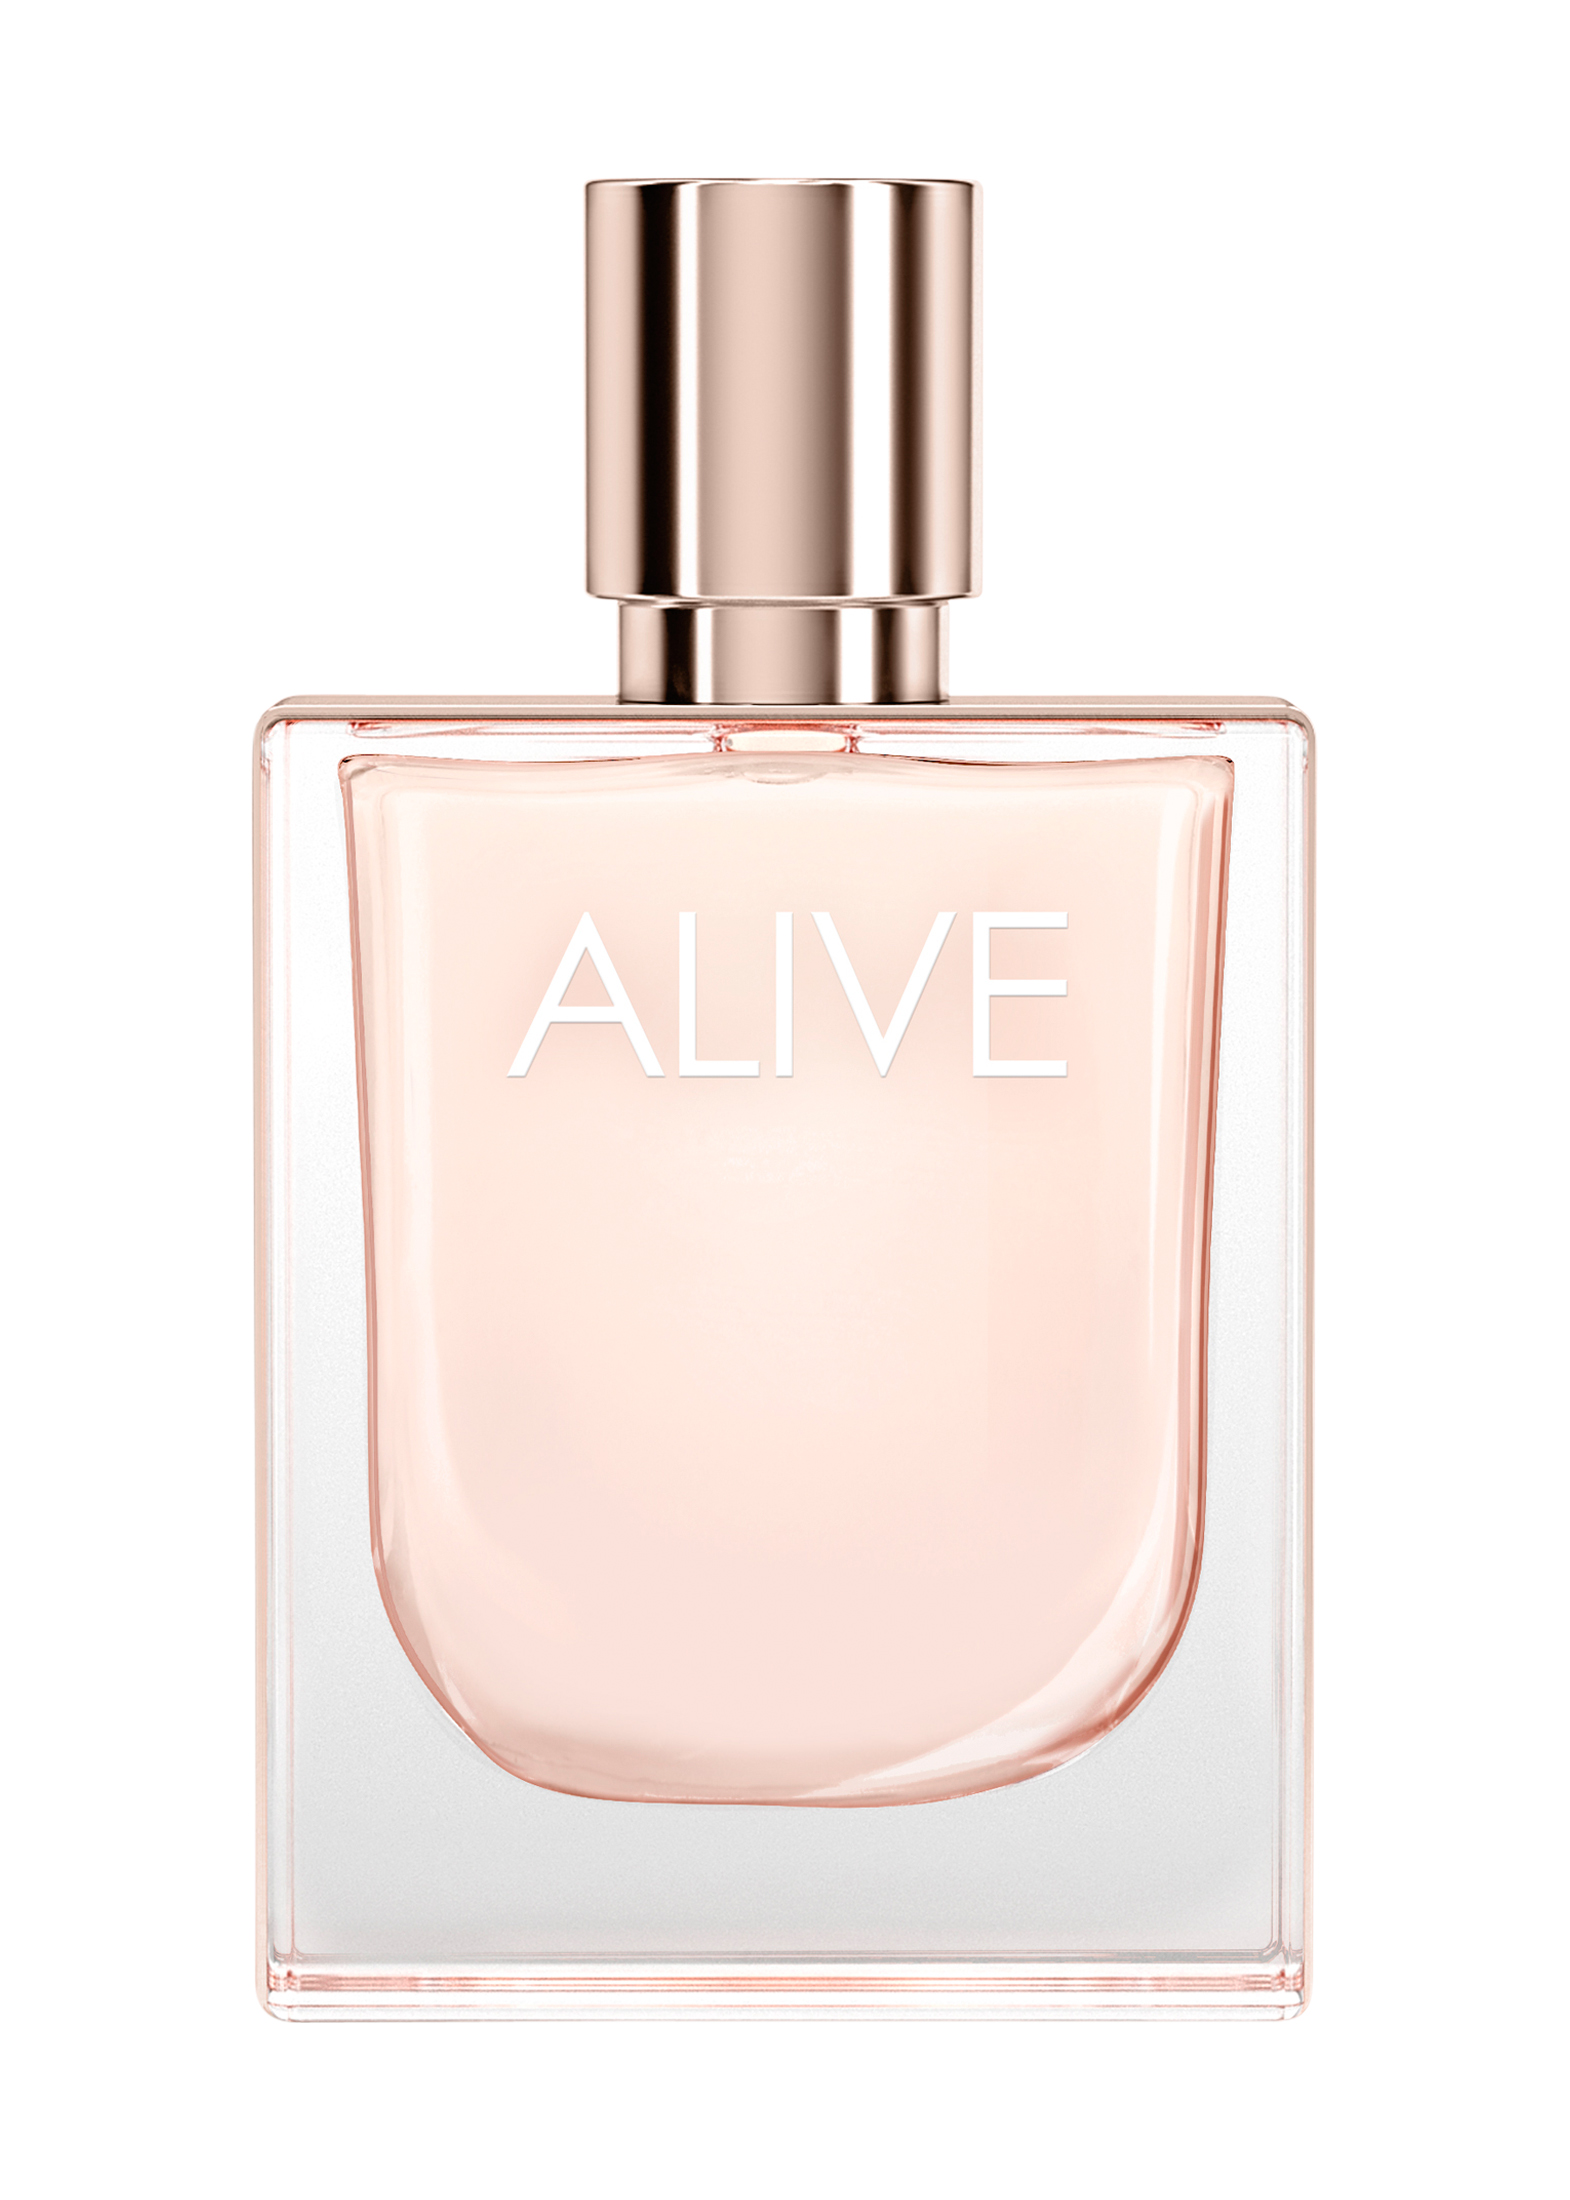 BOSS ALIVE EDT 50ML image number 0